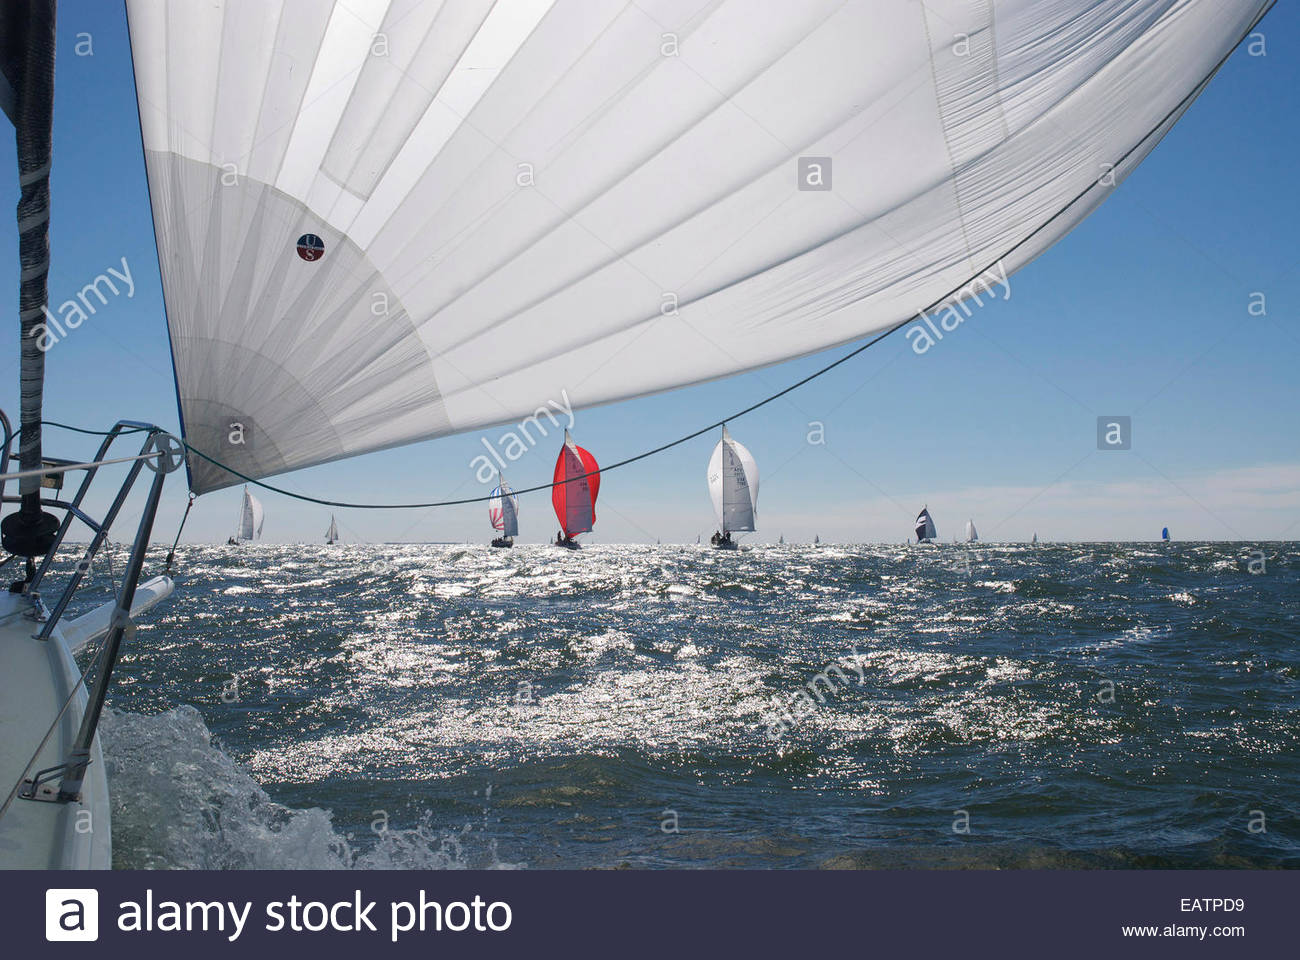 A spinnaker flying on a breezy day during a regatta. - Stock Image